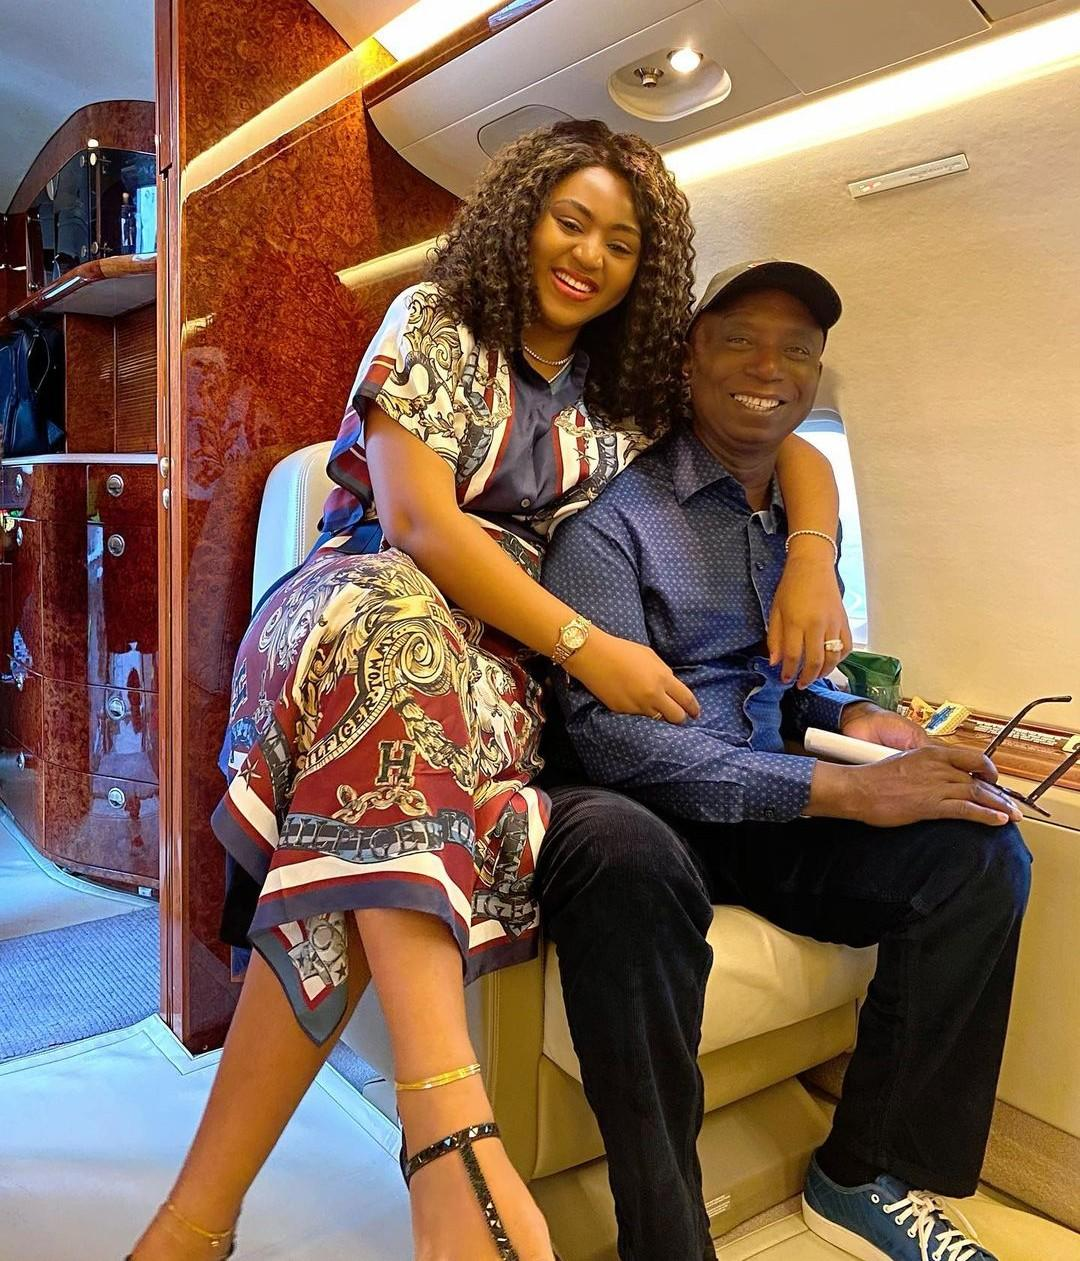 Regina knows I'll marry again – Ned Nwoko reveals in new interview 2